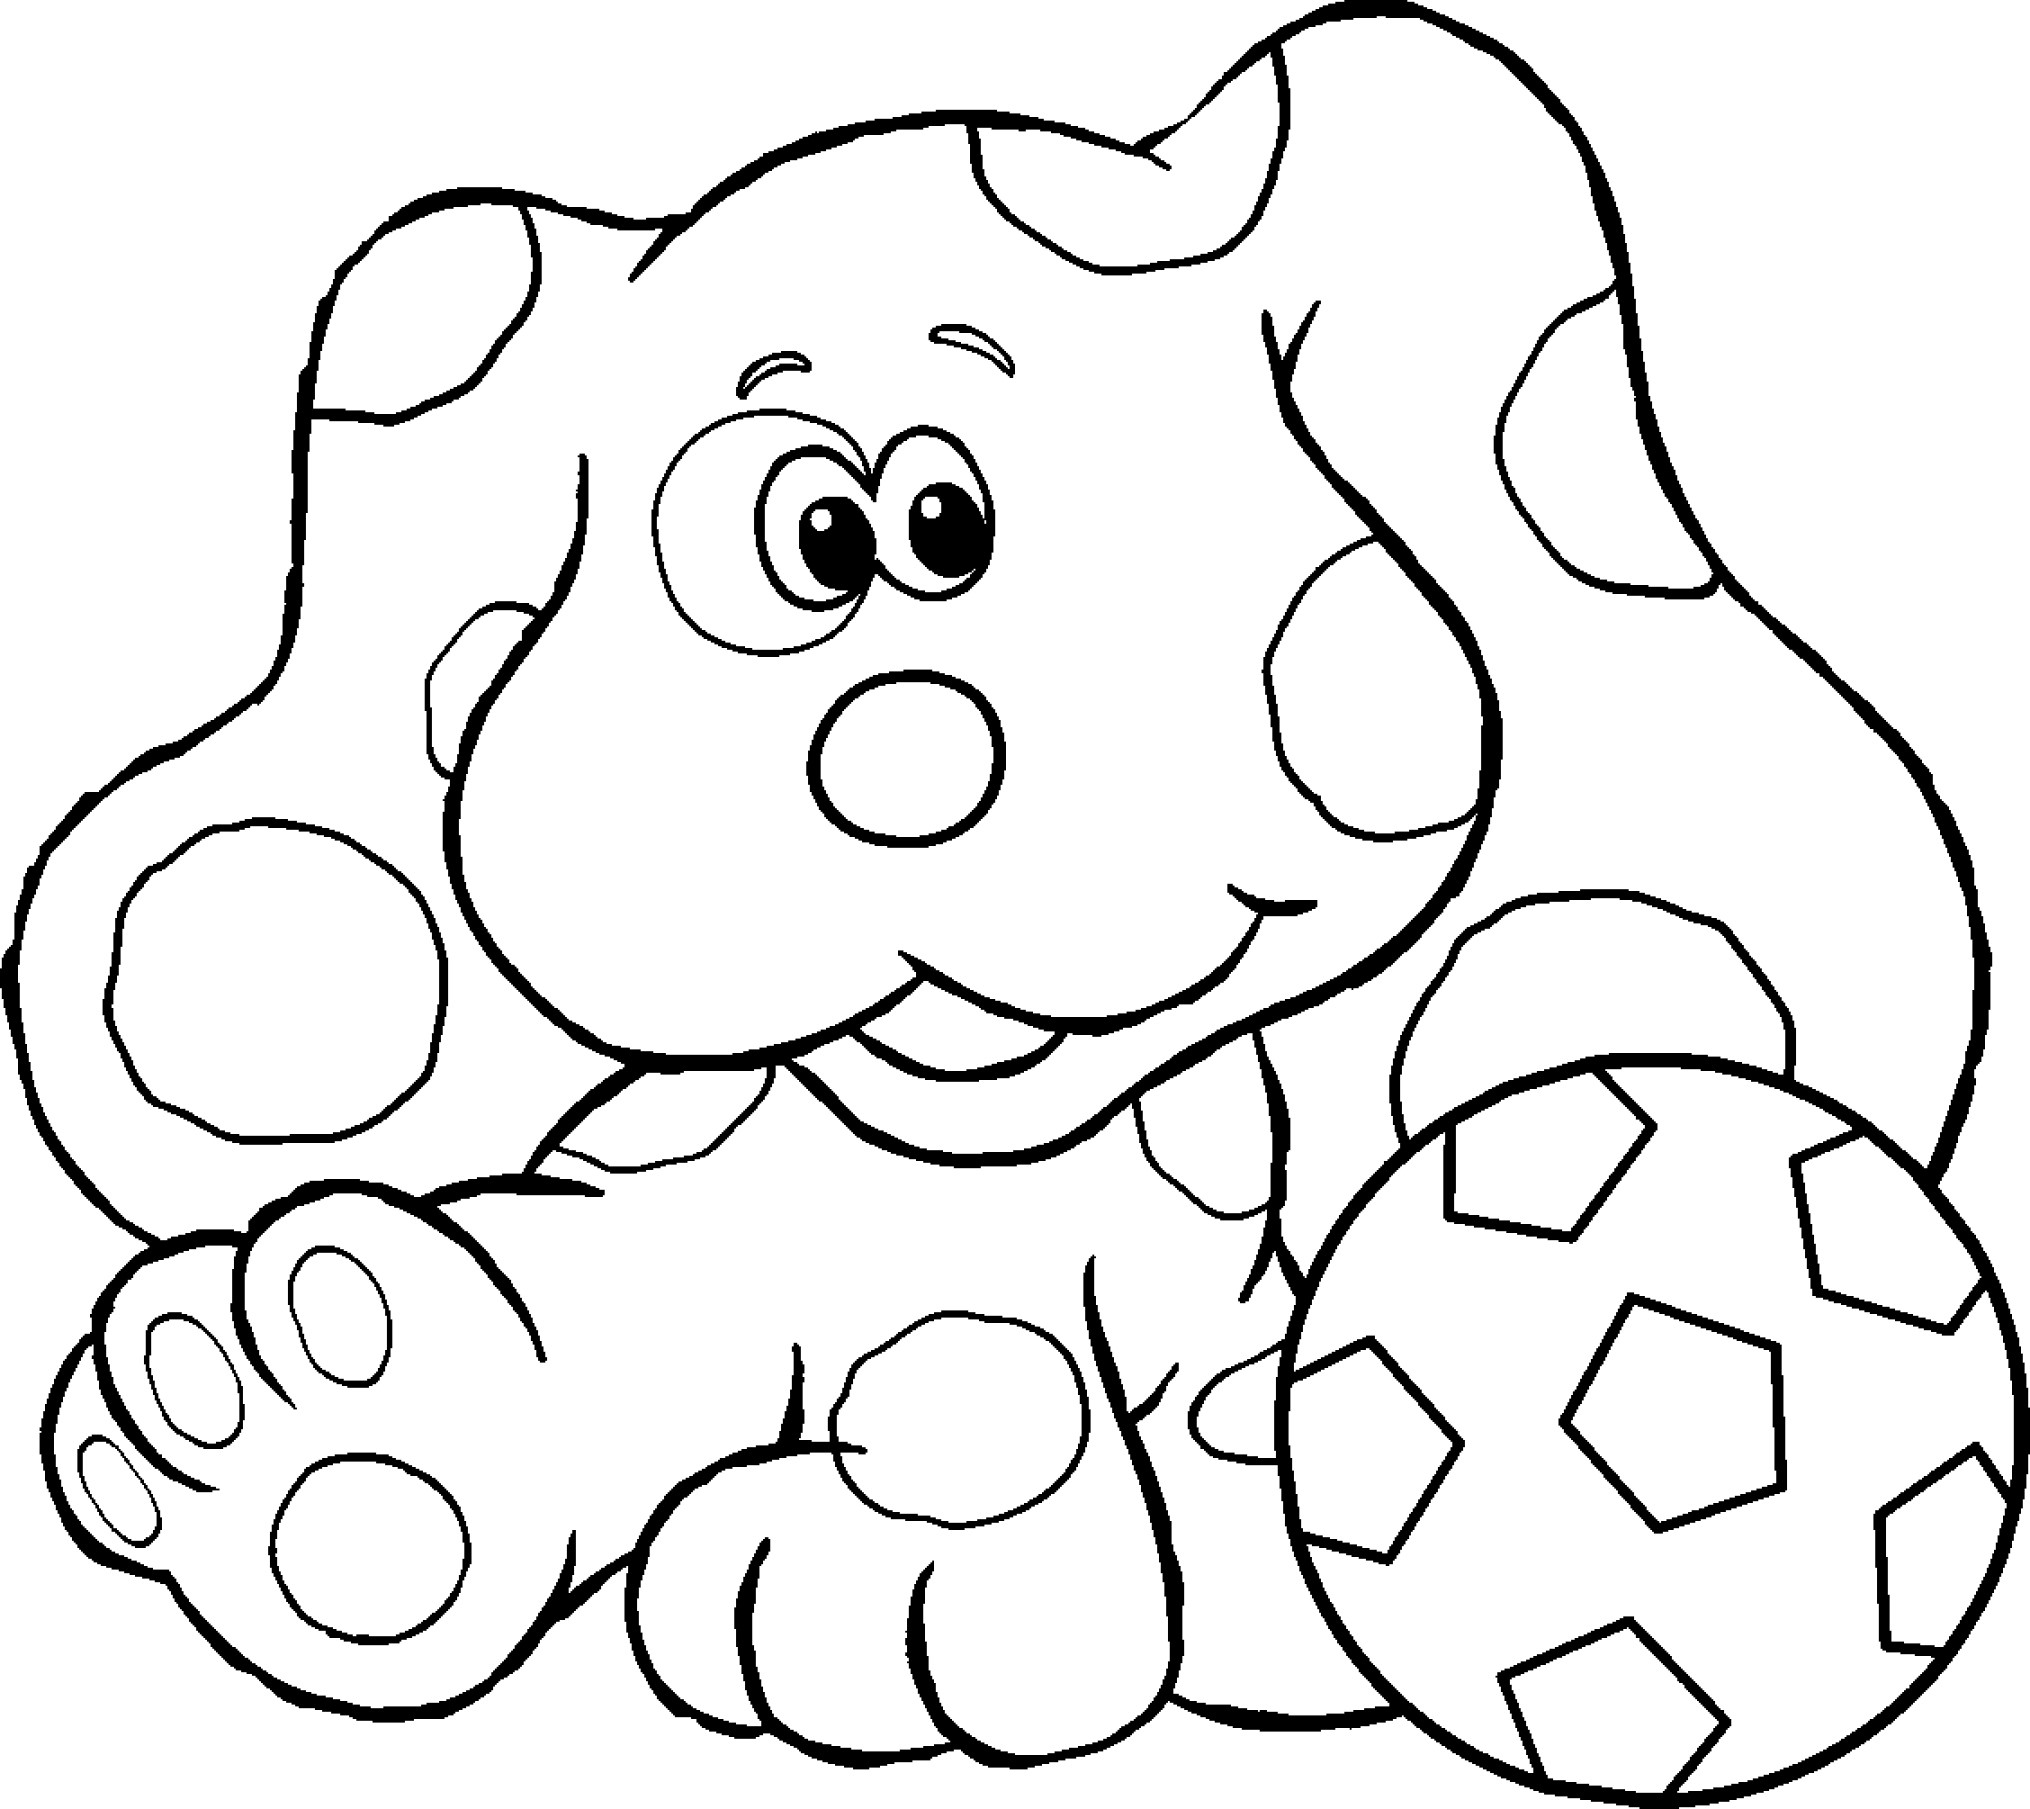 Blue Coloring Pages For Kids  Blue s Clues Coloring Page Soccer